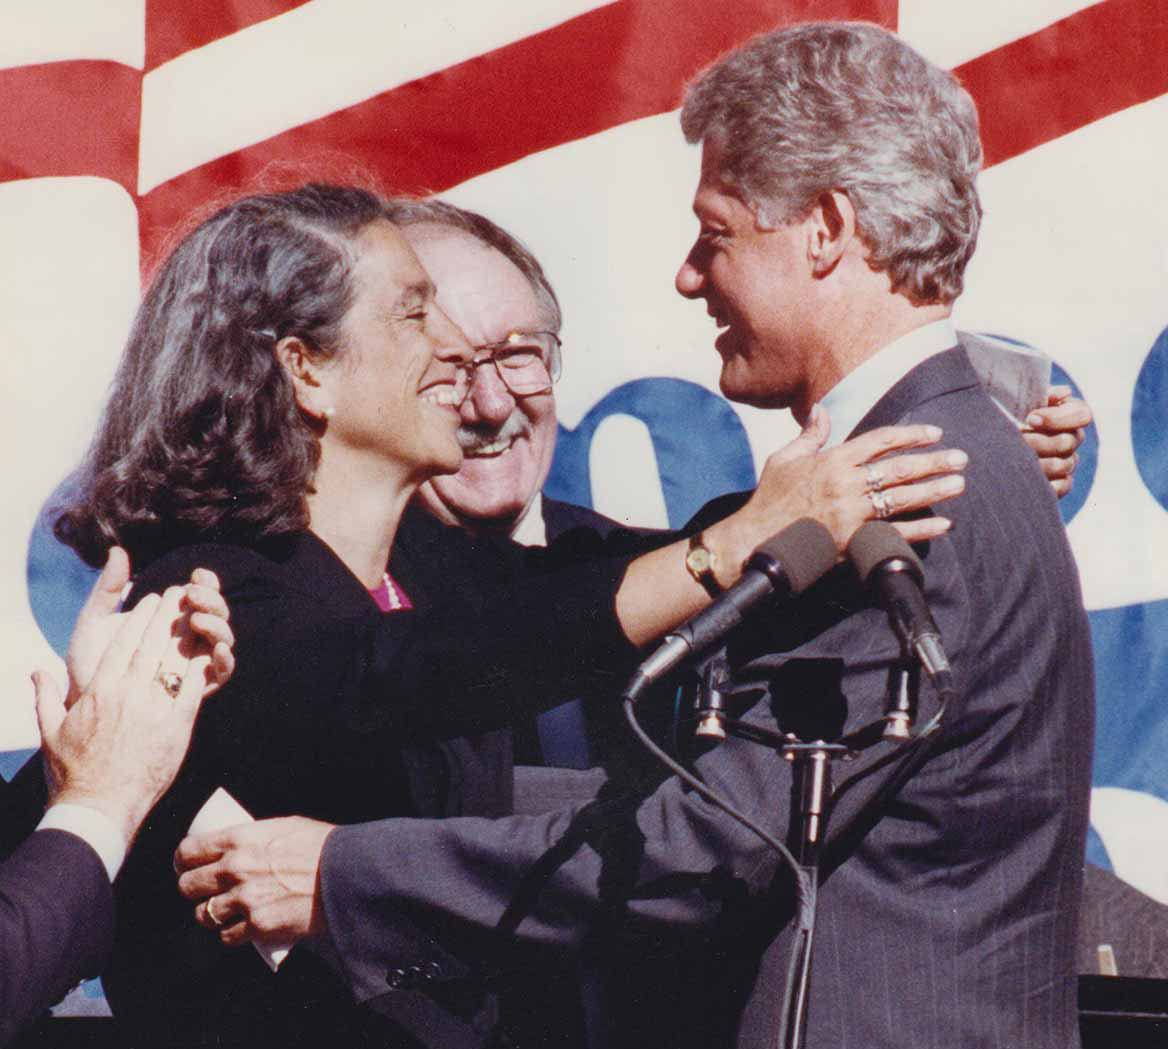 Ruth Messinger with President Bill Clinton at one of his 1992 campaign events.